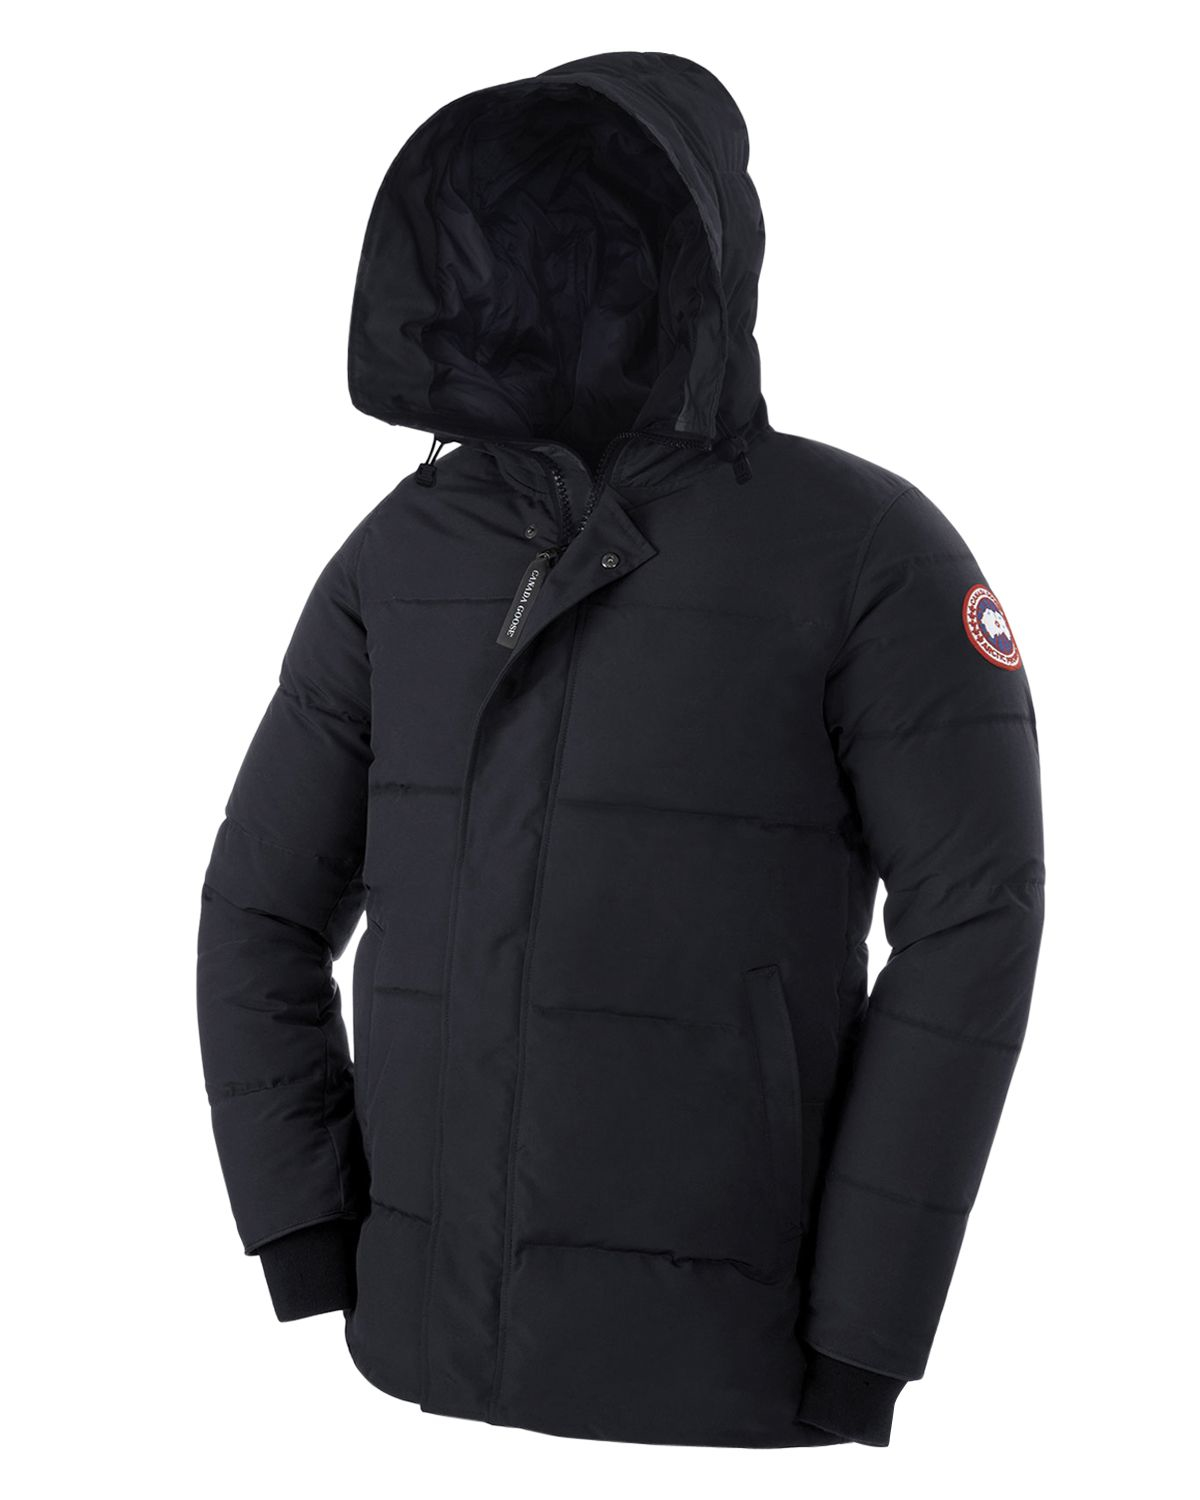 how to keep white canada goose jacket clean